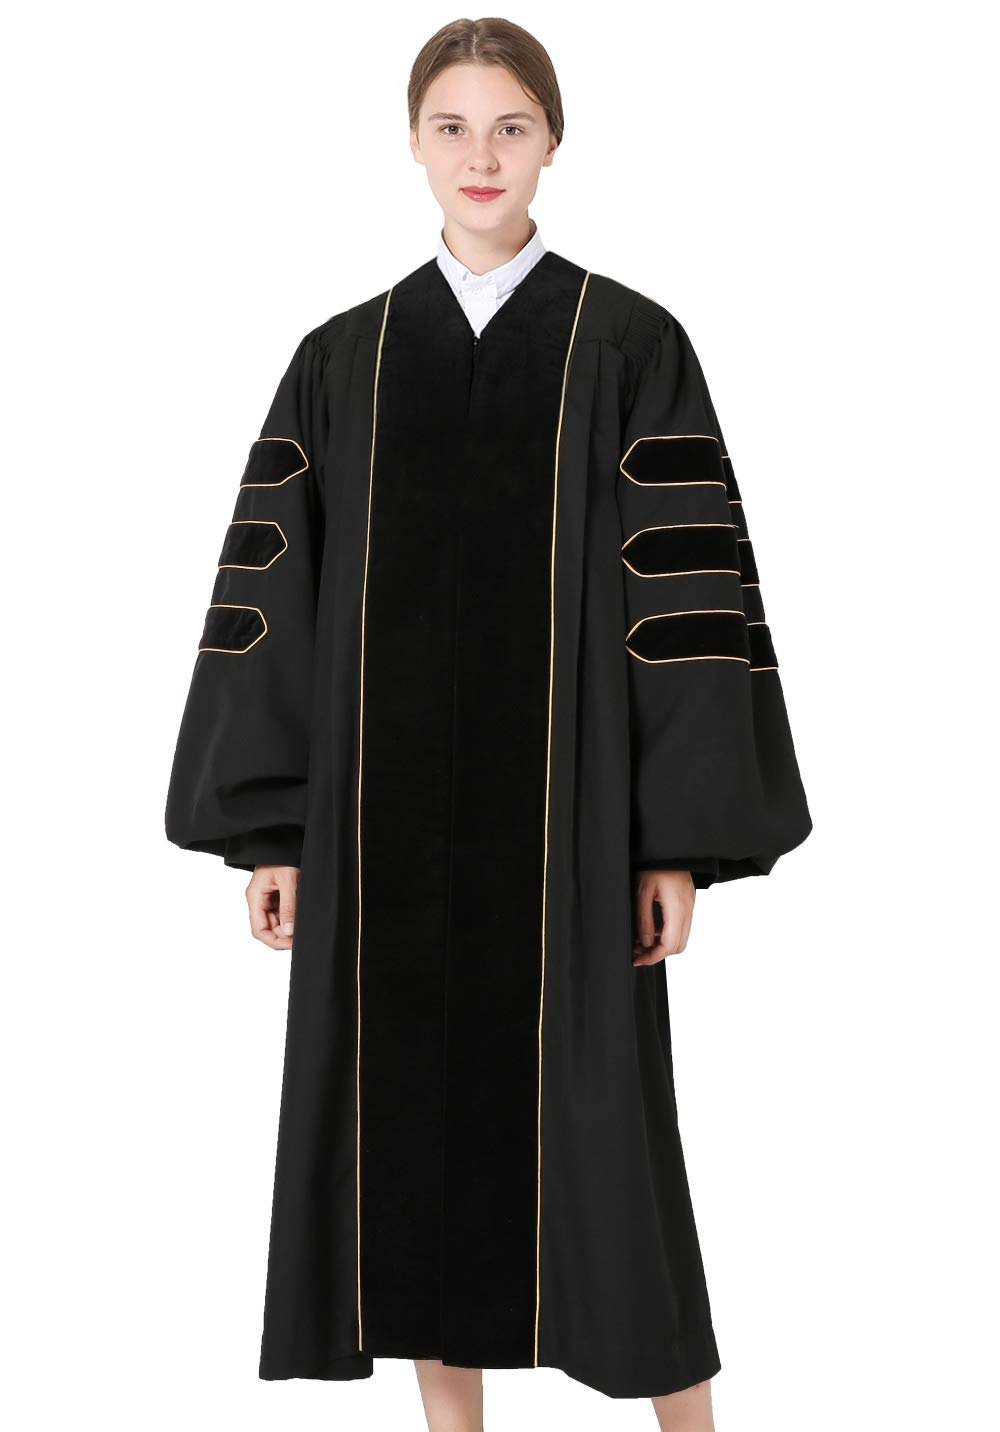 GraduationMall Deluxe Doctoral Graduation Gown for Faculty and Professor Black Velvet with Gold Piping 54(5'9''-5'11'')